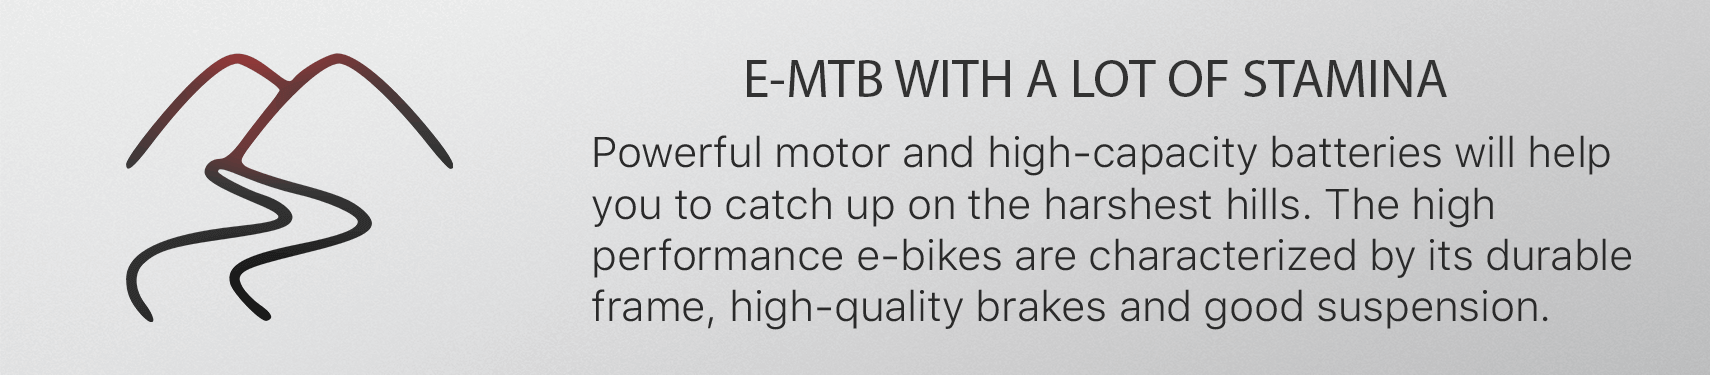 E-MTB WITH A LOT OF STAMINA. Powerful motor and high-capacity batteries will help  you to catch up on the harshest hills. The high  performance e-bikes are characterized by its durable  frame, high-quality brakes and good suspension.